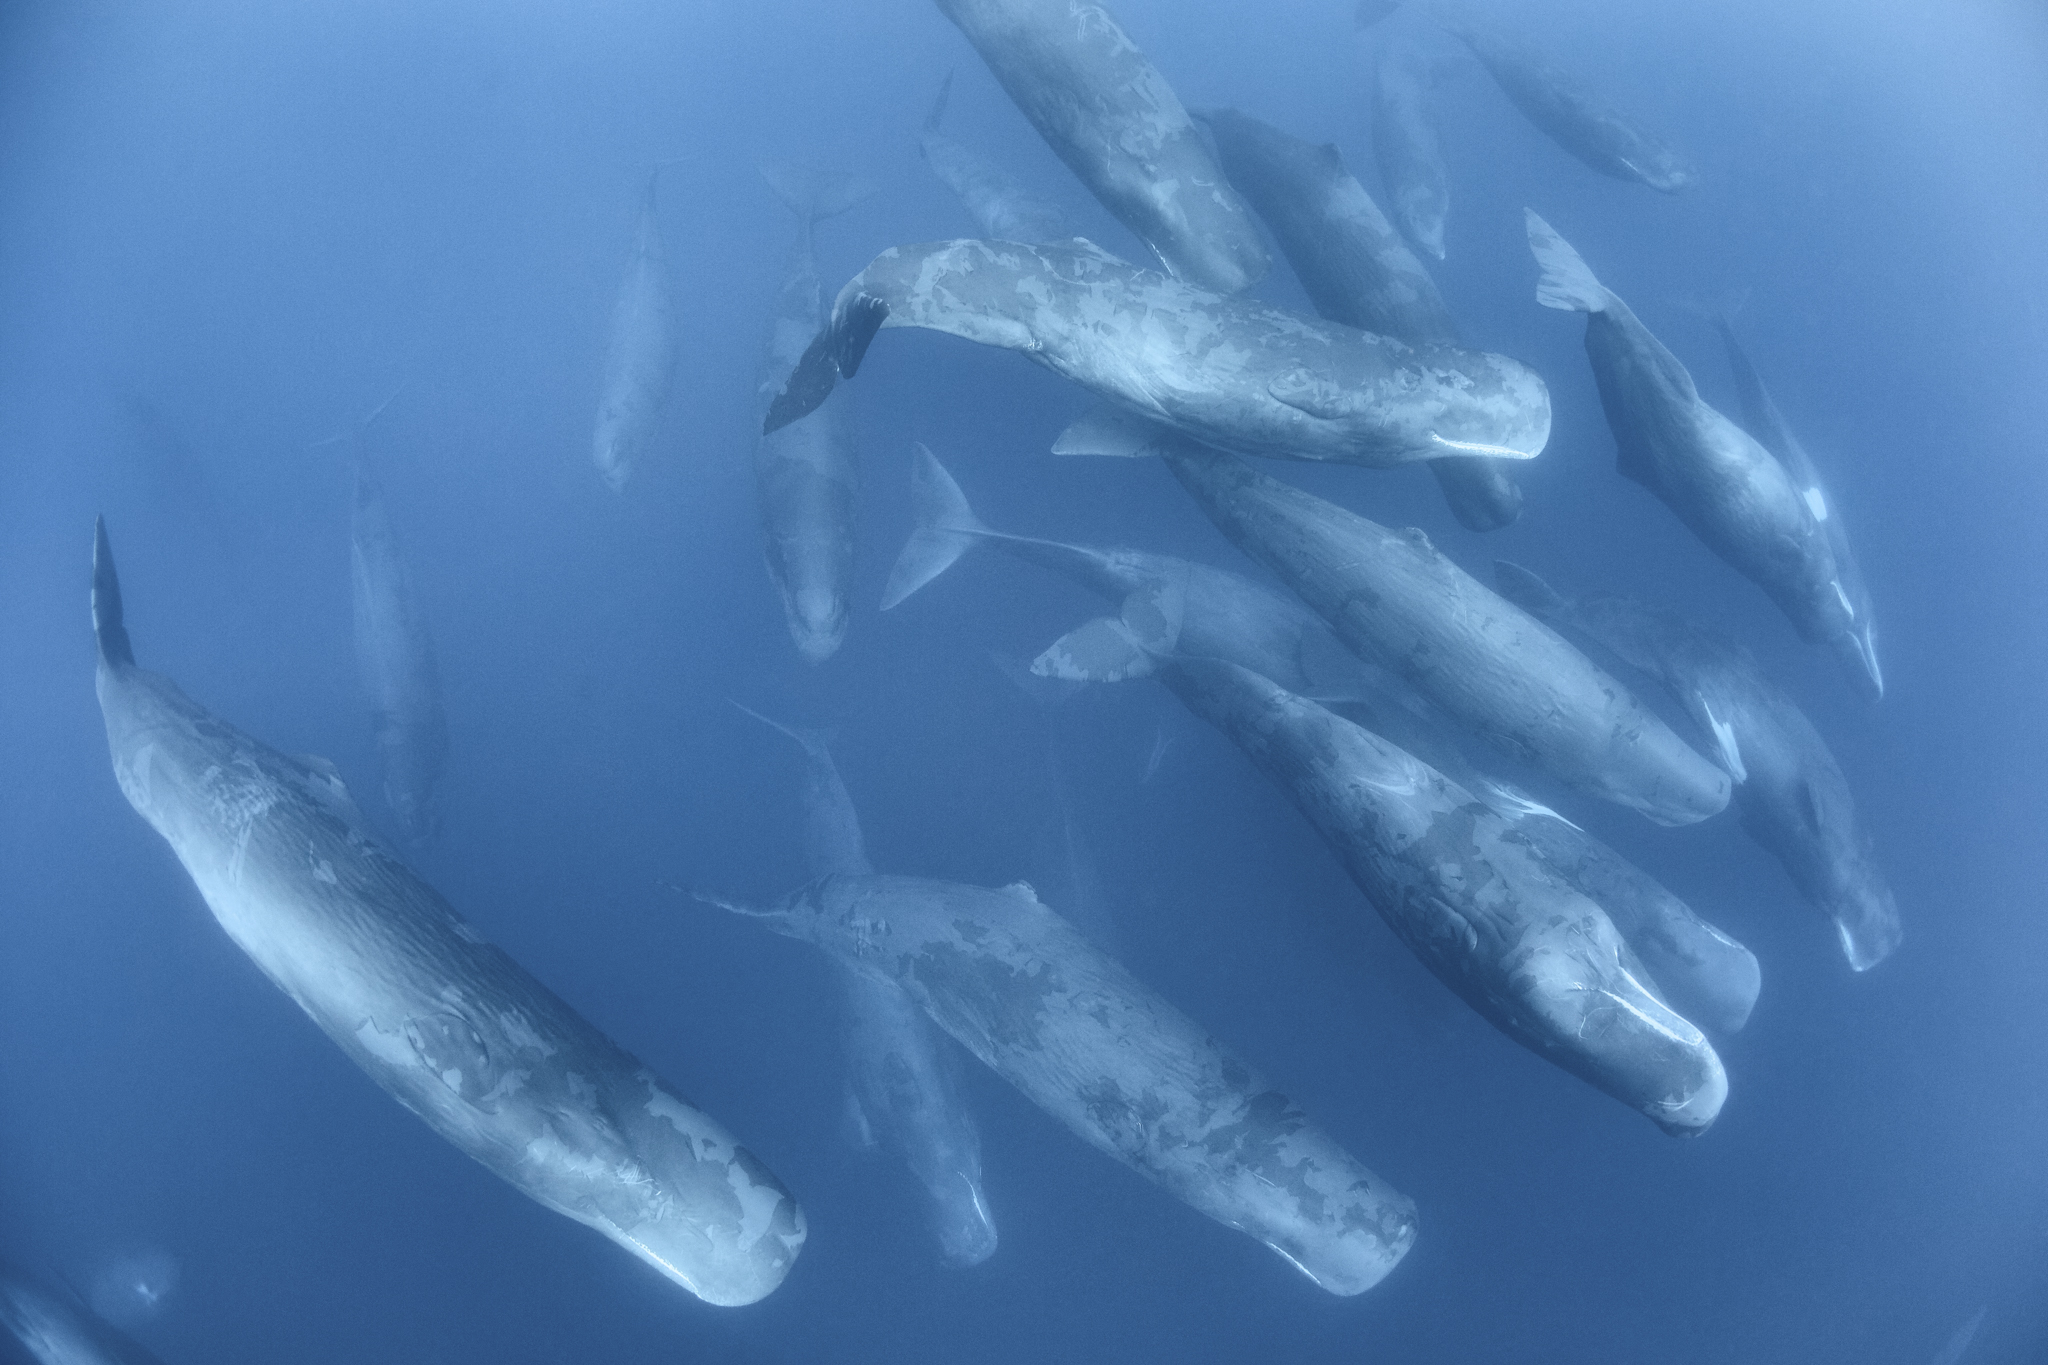 An aggregation of sperm whales (Physeter macrocephalus) engaged in social activity. The large gathering persisted for two days.